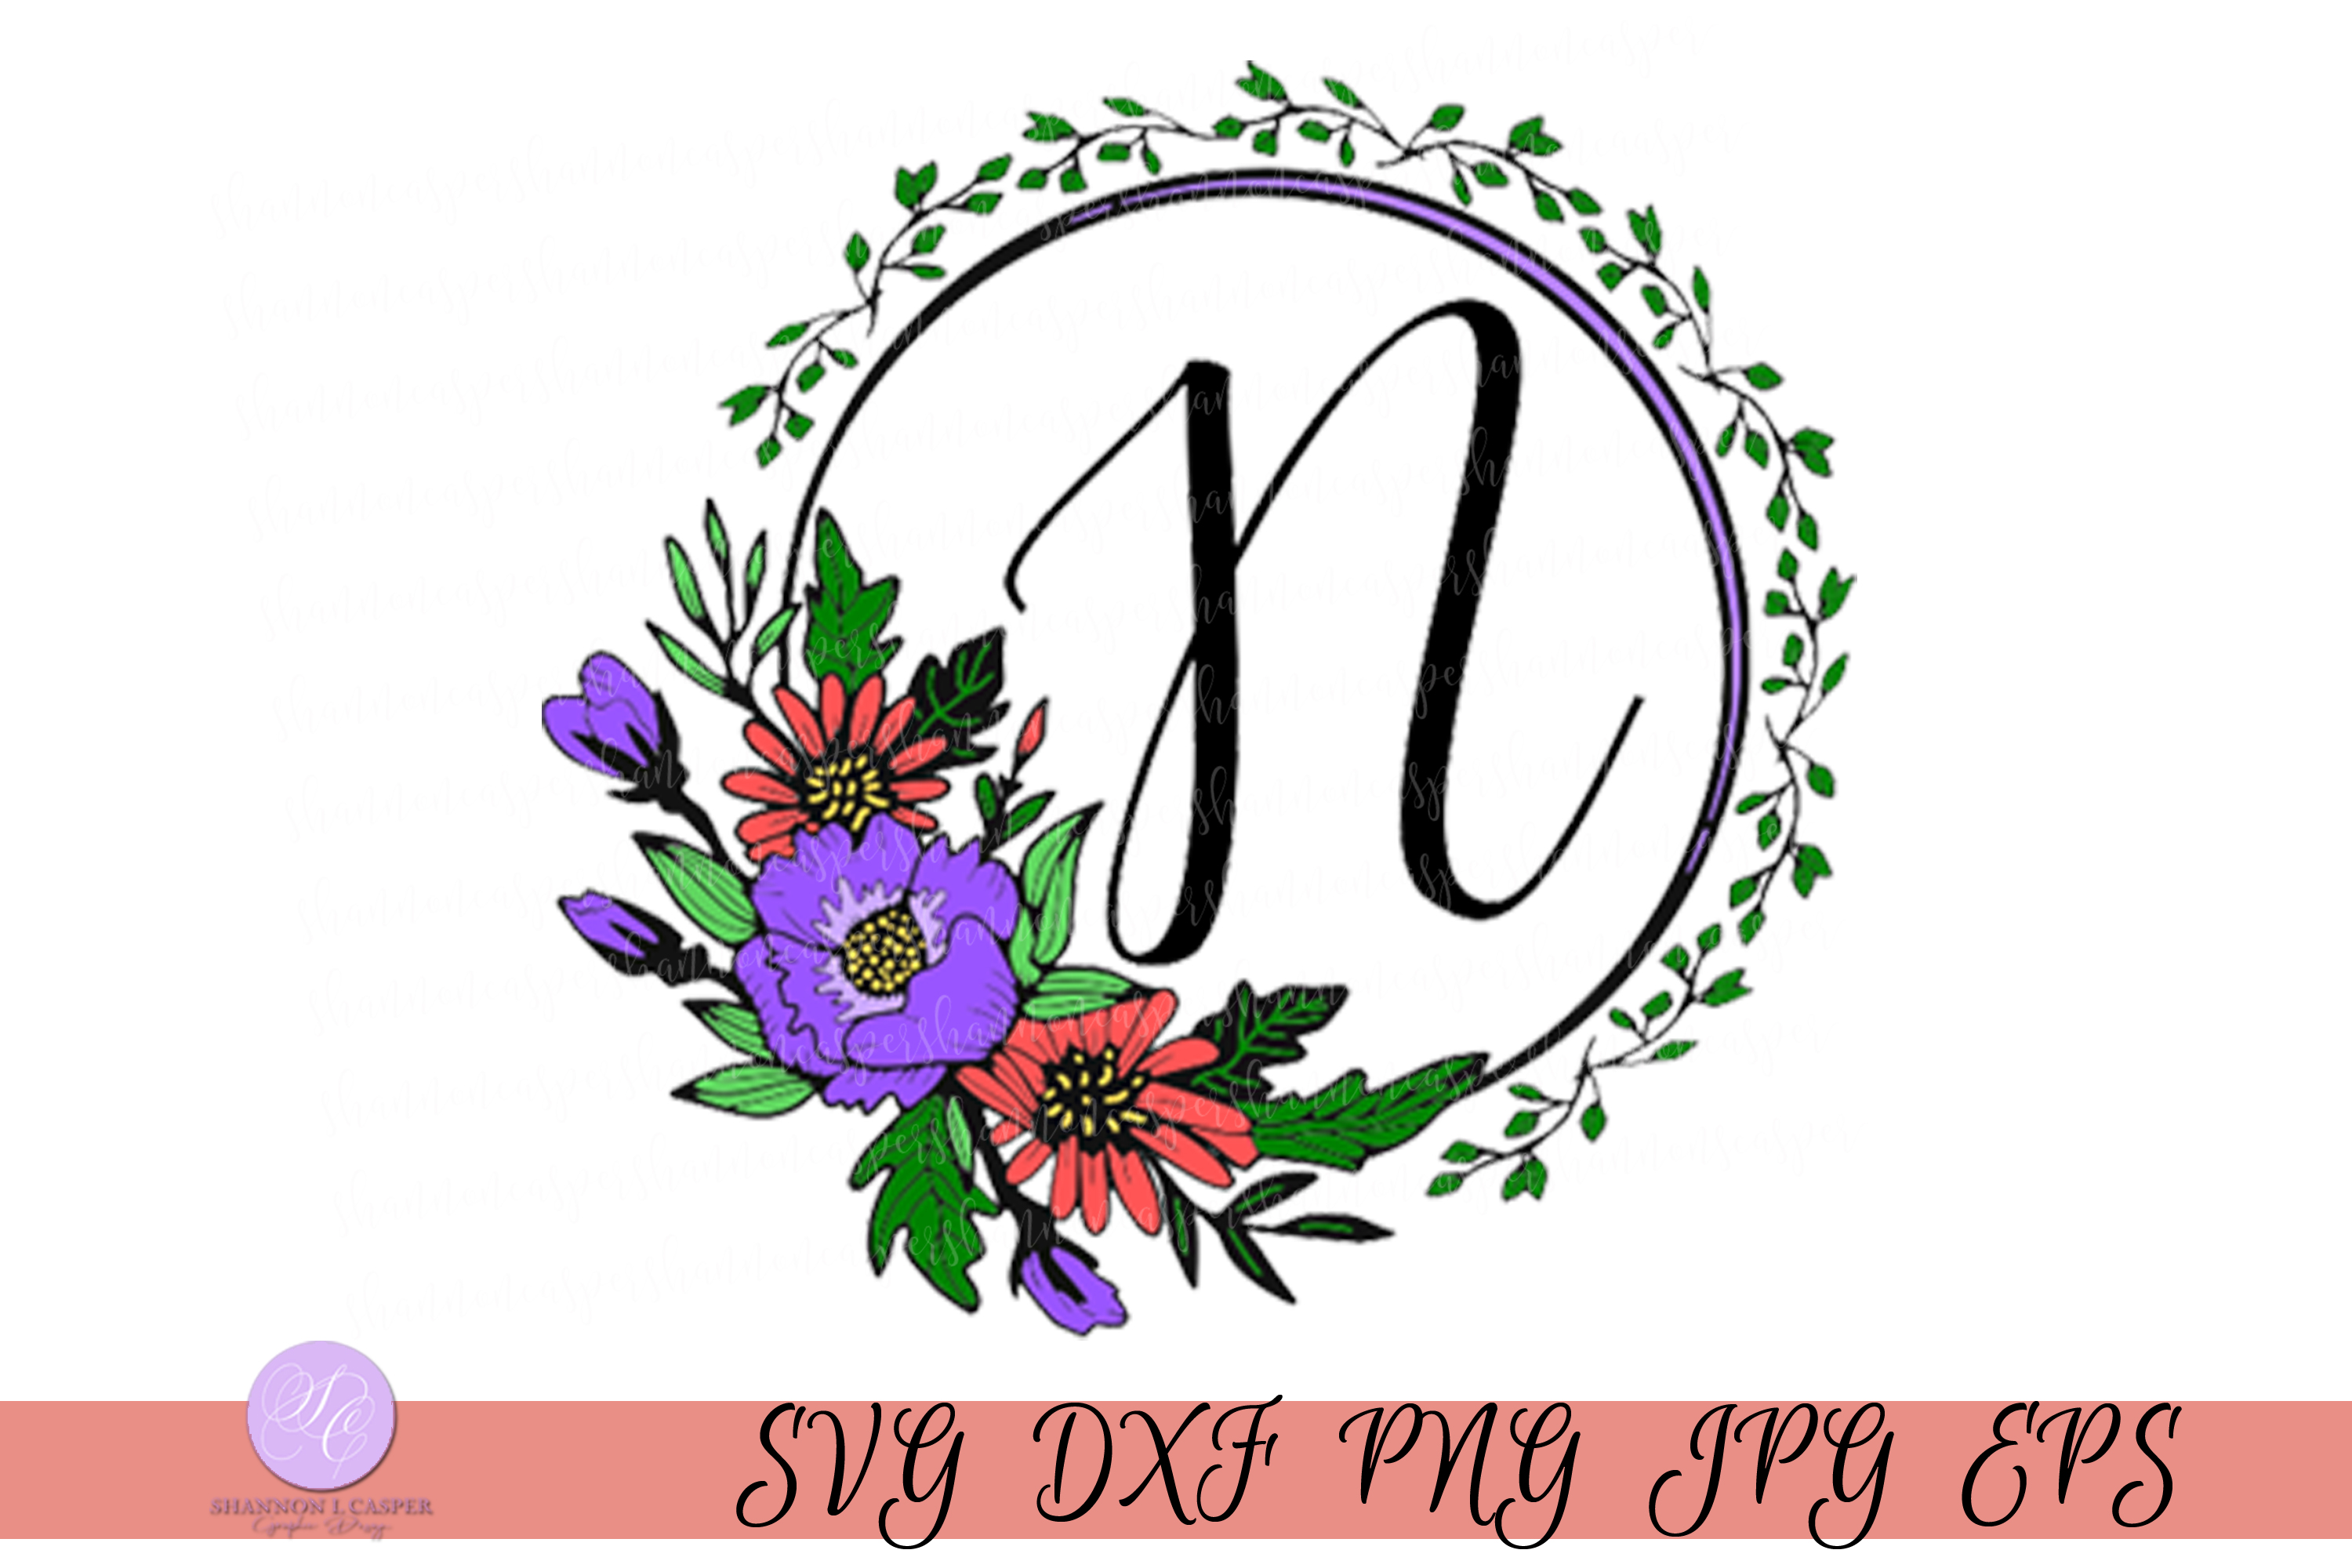 Download Free Script Letter N Monogram Graphic By Shannon Casper Creative for Cricut Explore, Silhouette and other cutting machines.